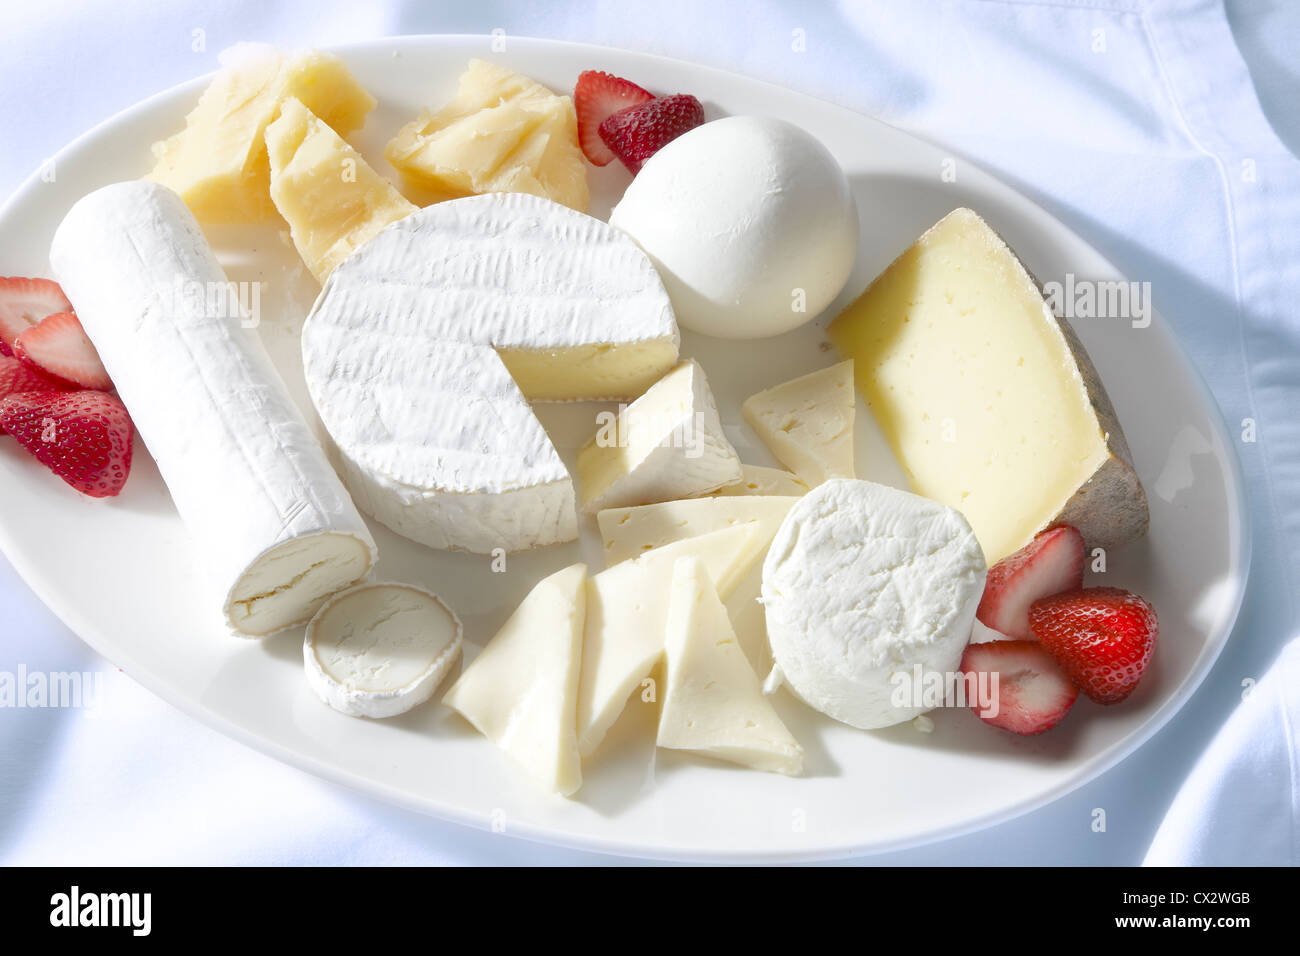 Cheese Platter - Stock Image